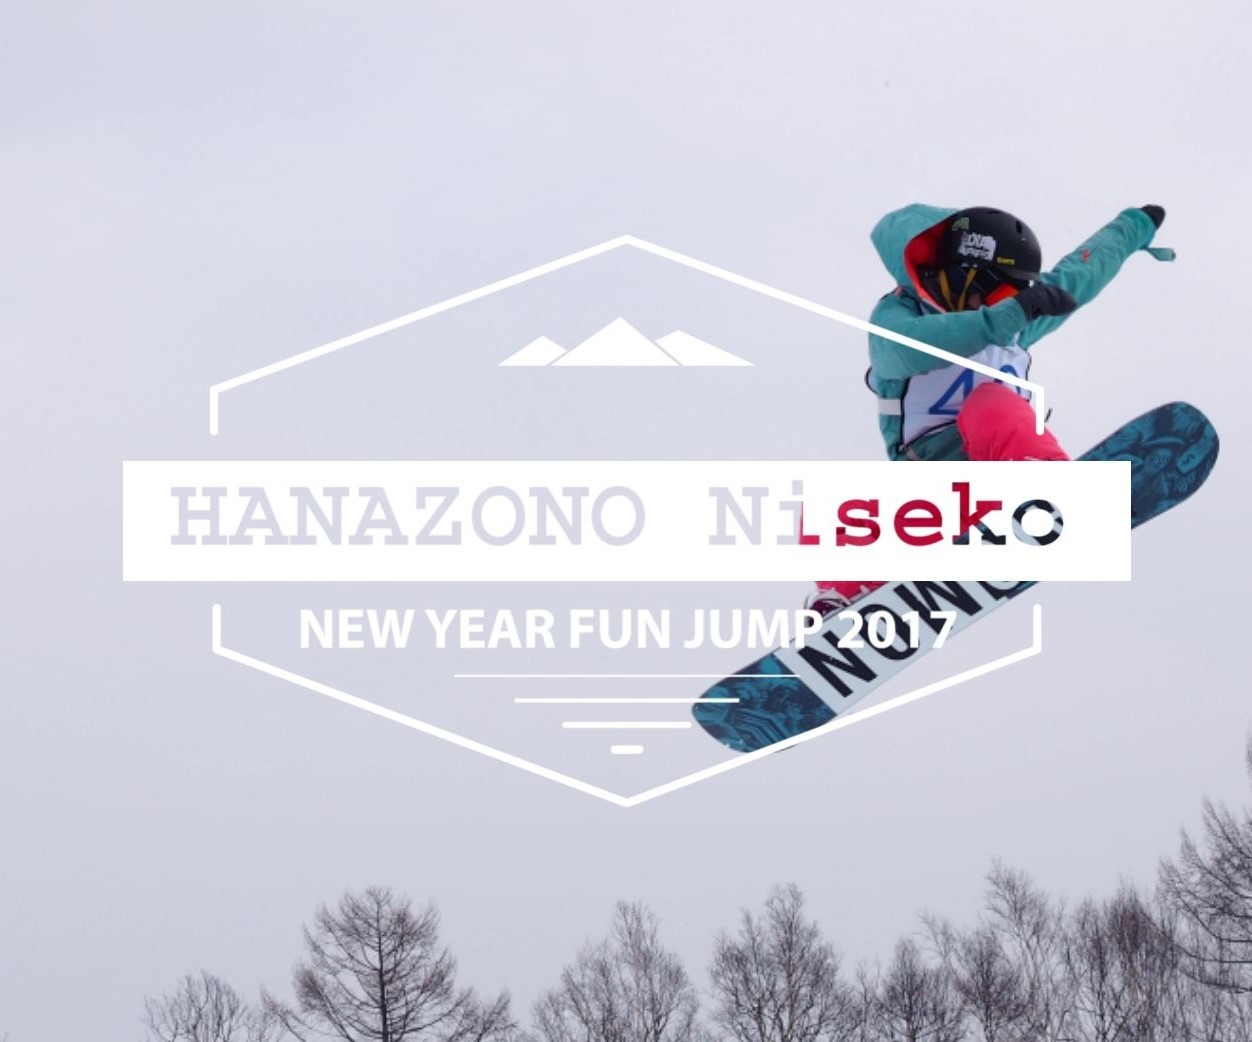 Hanazono new year fun jump 2017